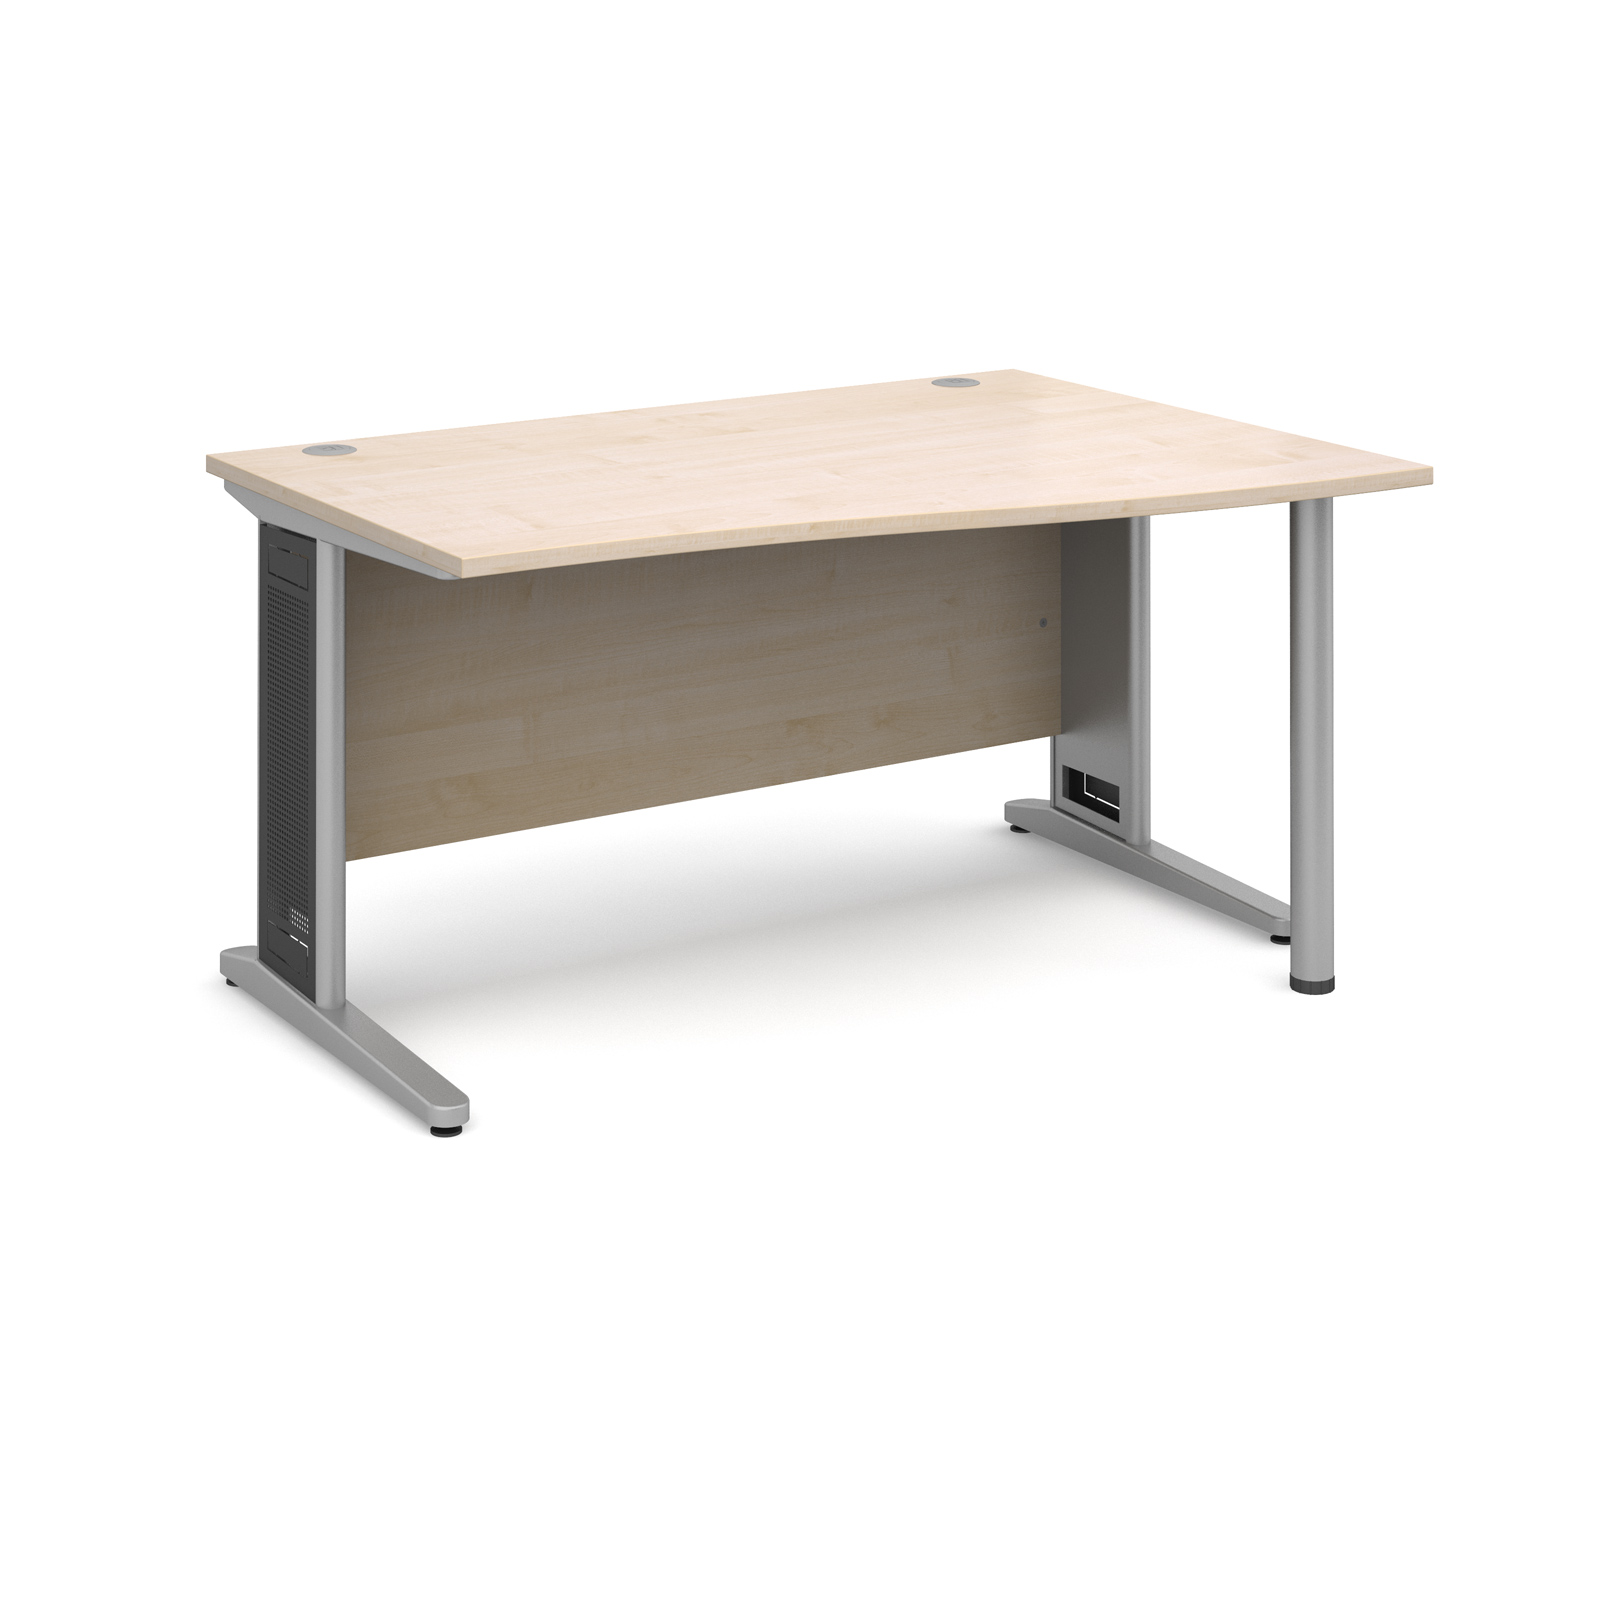 Largo right hand wave desk 1400mm - silver cantilever frame with removable grill, maple top